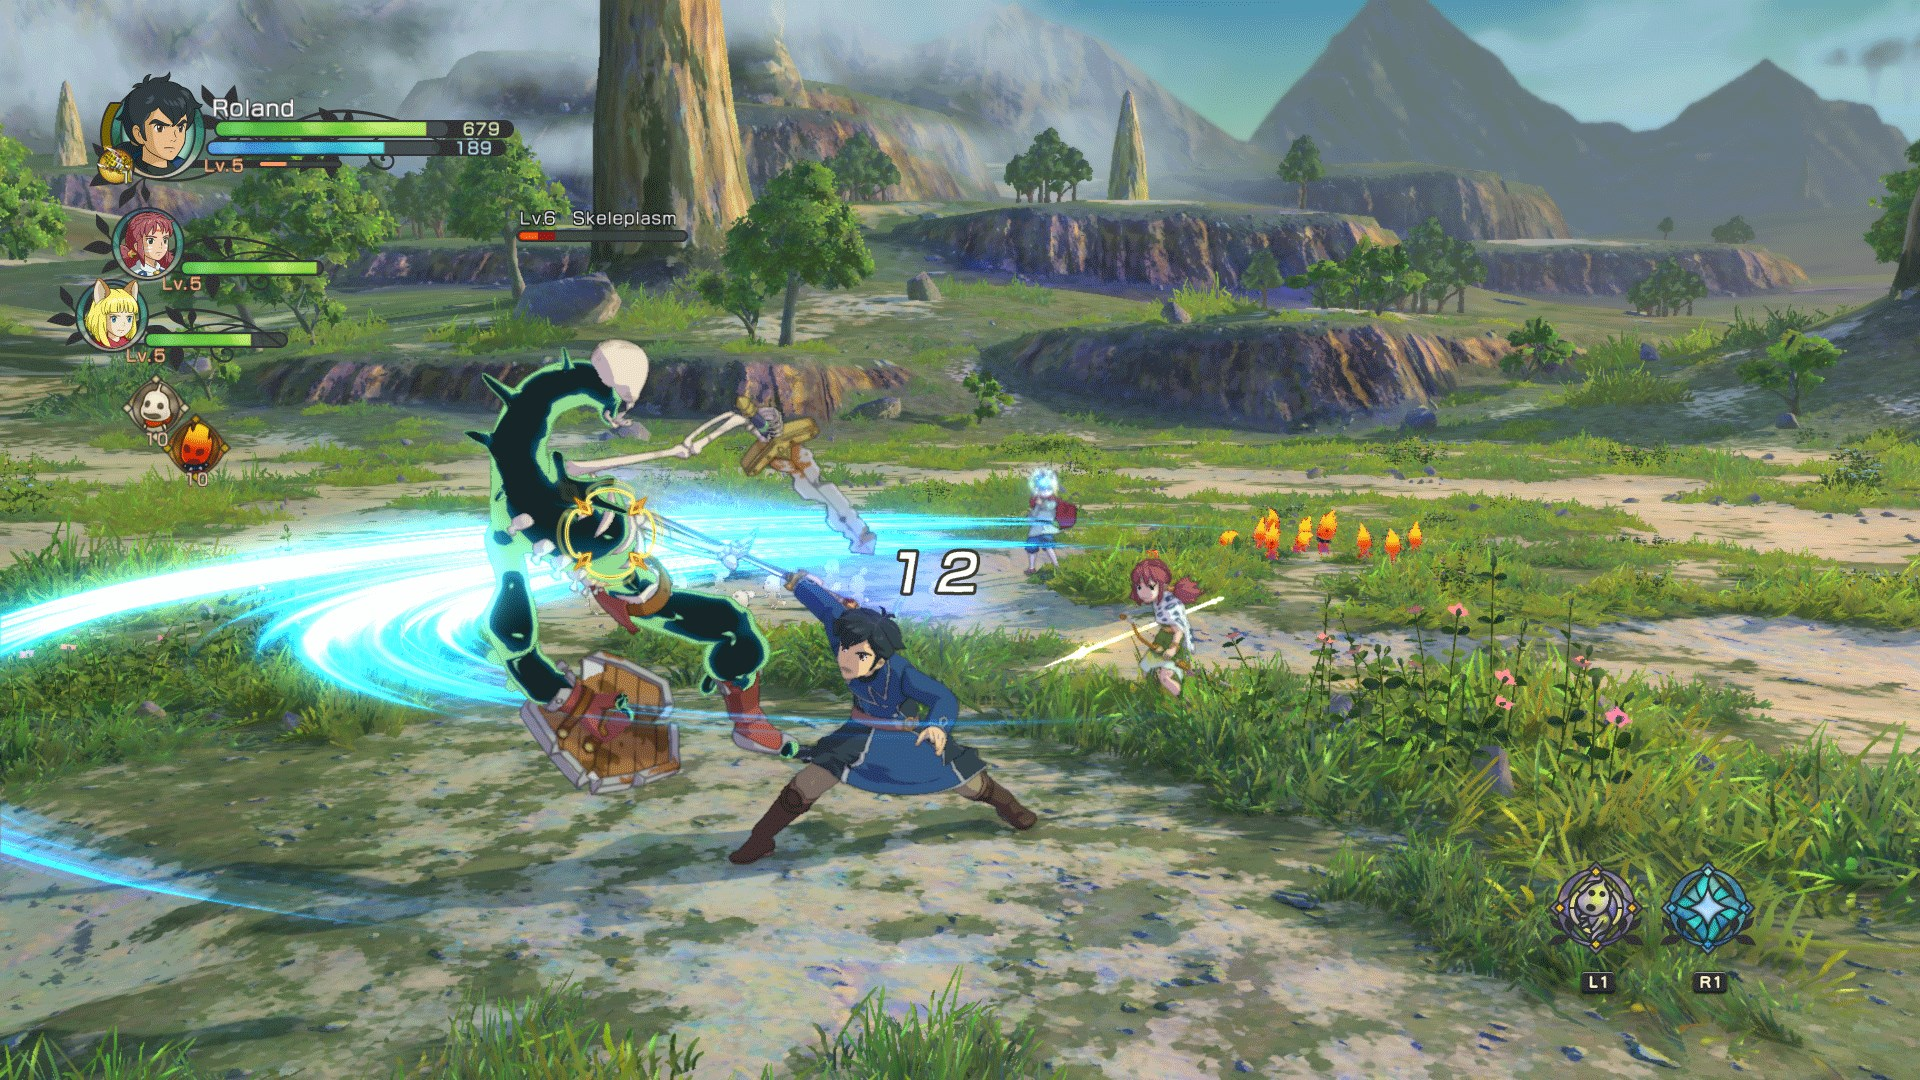 ni-no-kuni-2-screens-3